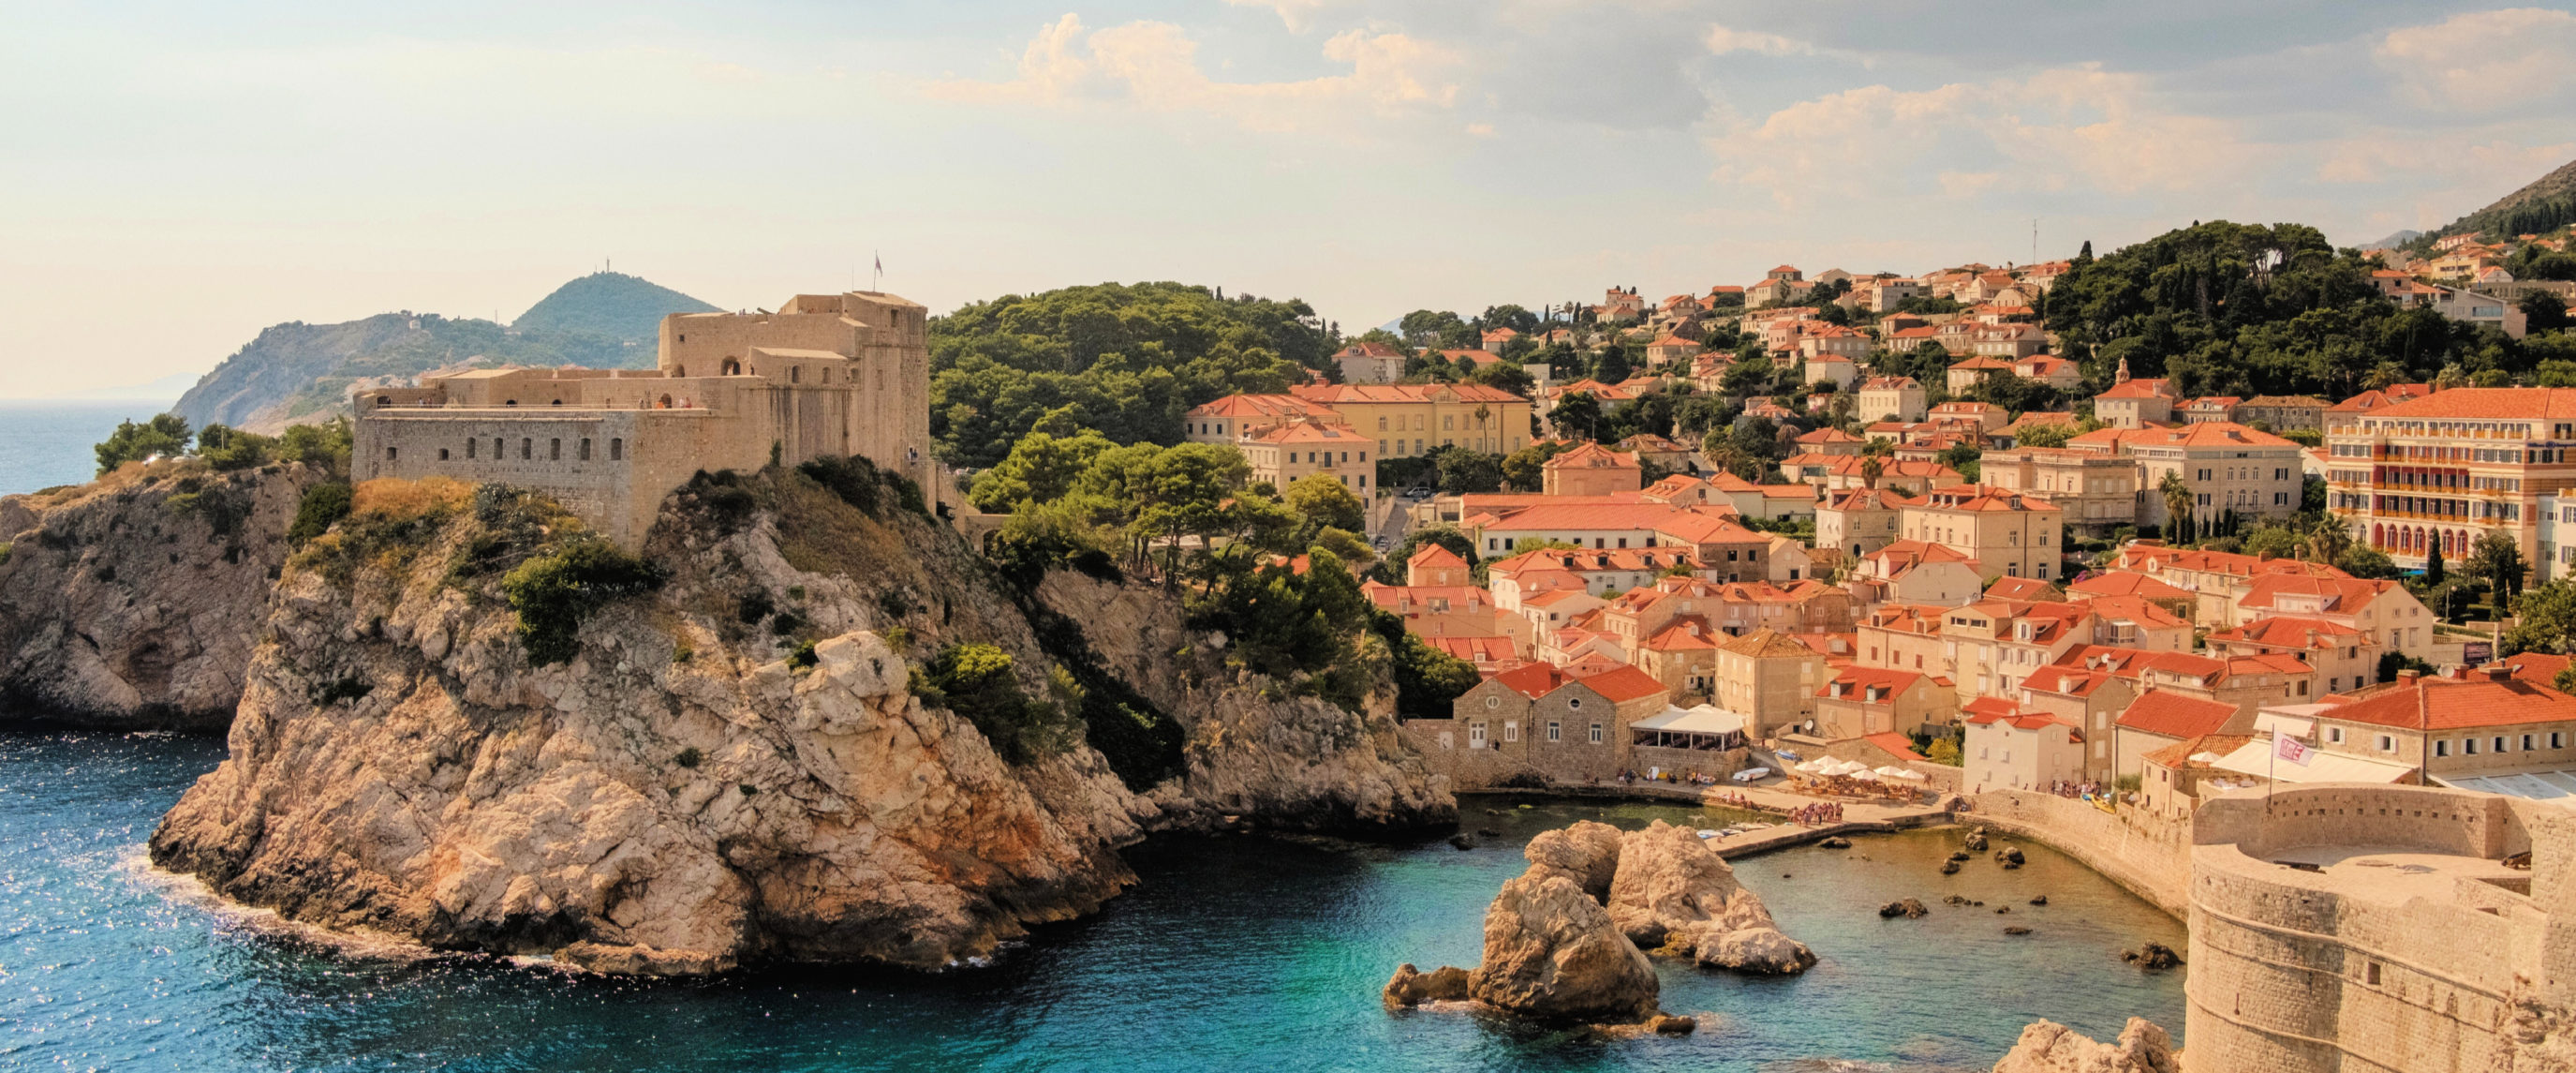 5 Things To Do In Dubrovnik That Anyone Would Love